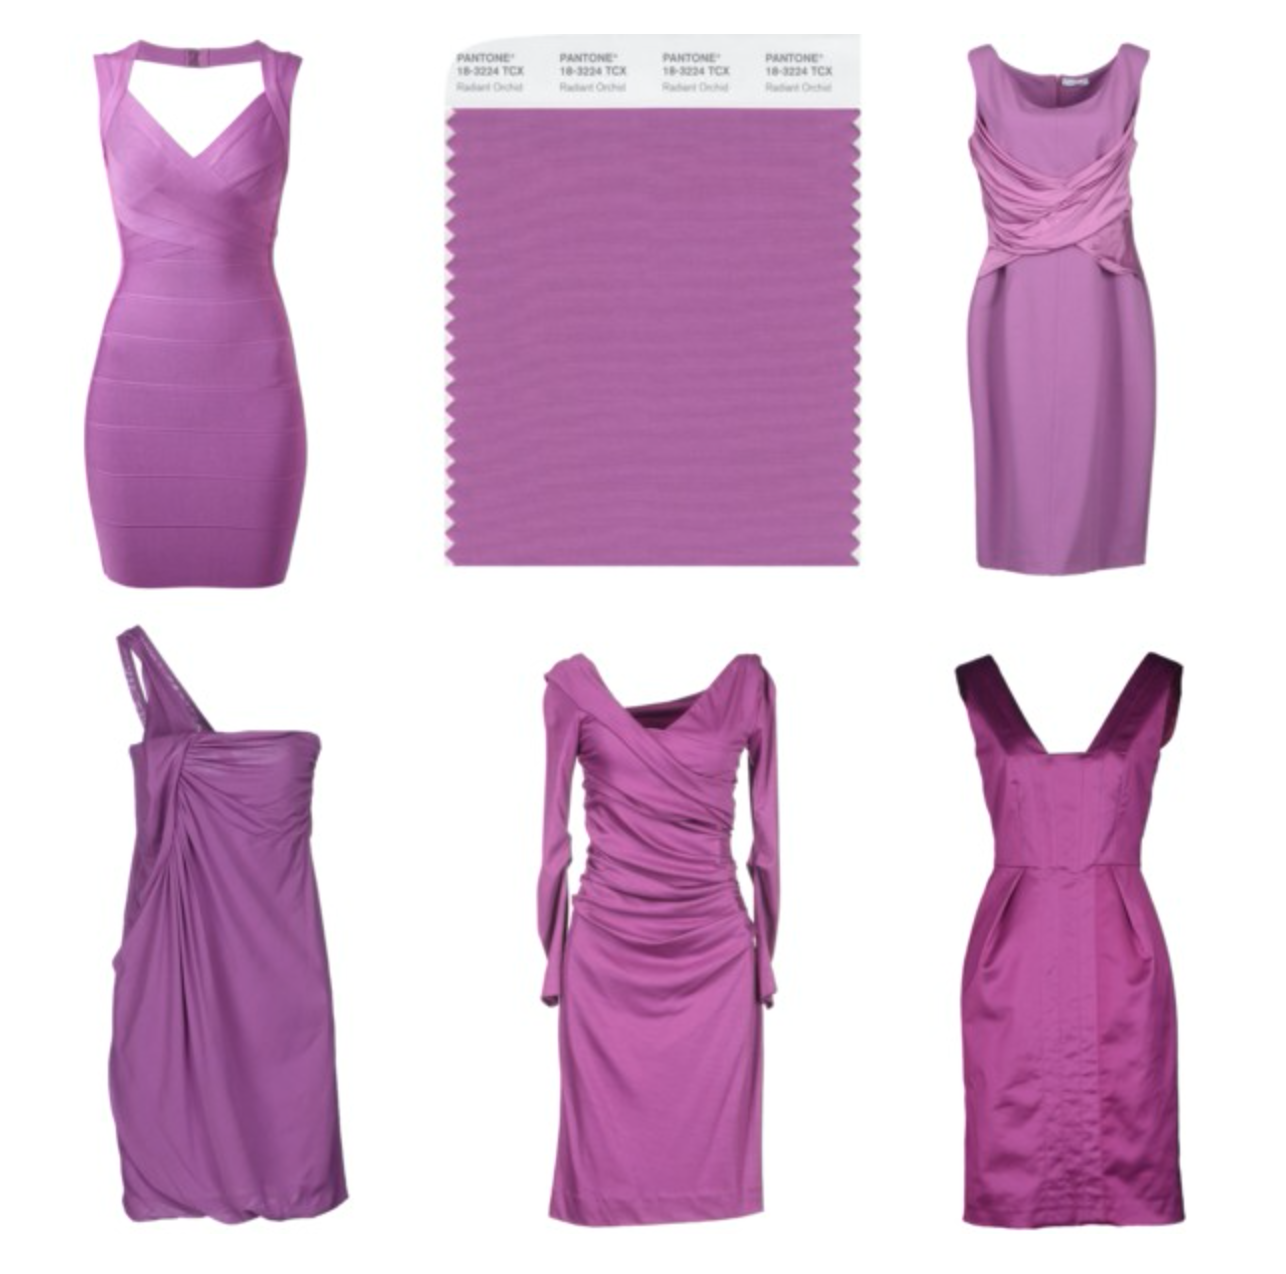 How to wear the Pantone color Radiant Orchid - Dresses   Mother Of ...